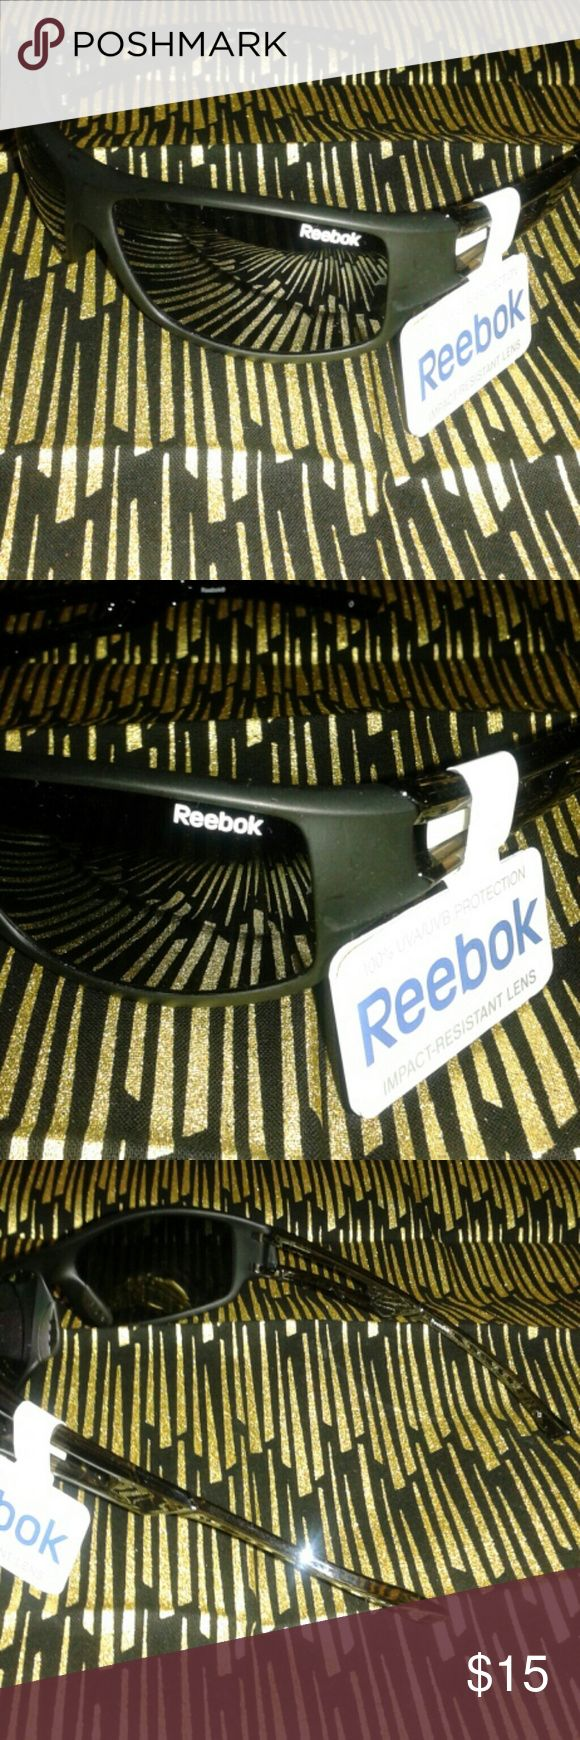 NWT REEBOK IMPACT RESISTANT SPORTS GLASSES Black on black chrome frames. Black lenses. 100% UVA/UVB PROTECTION. Reebok Accessories Sunglasses